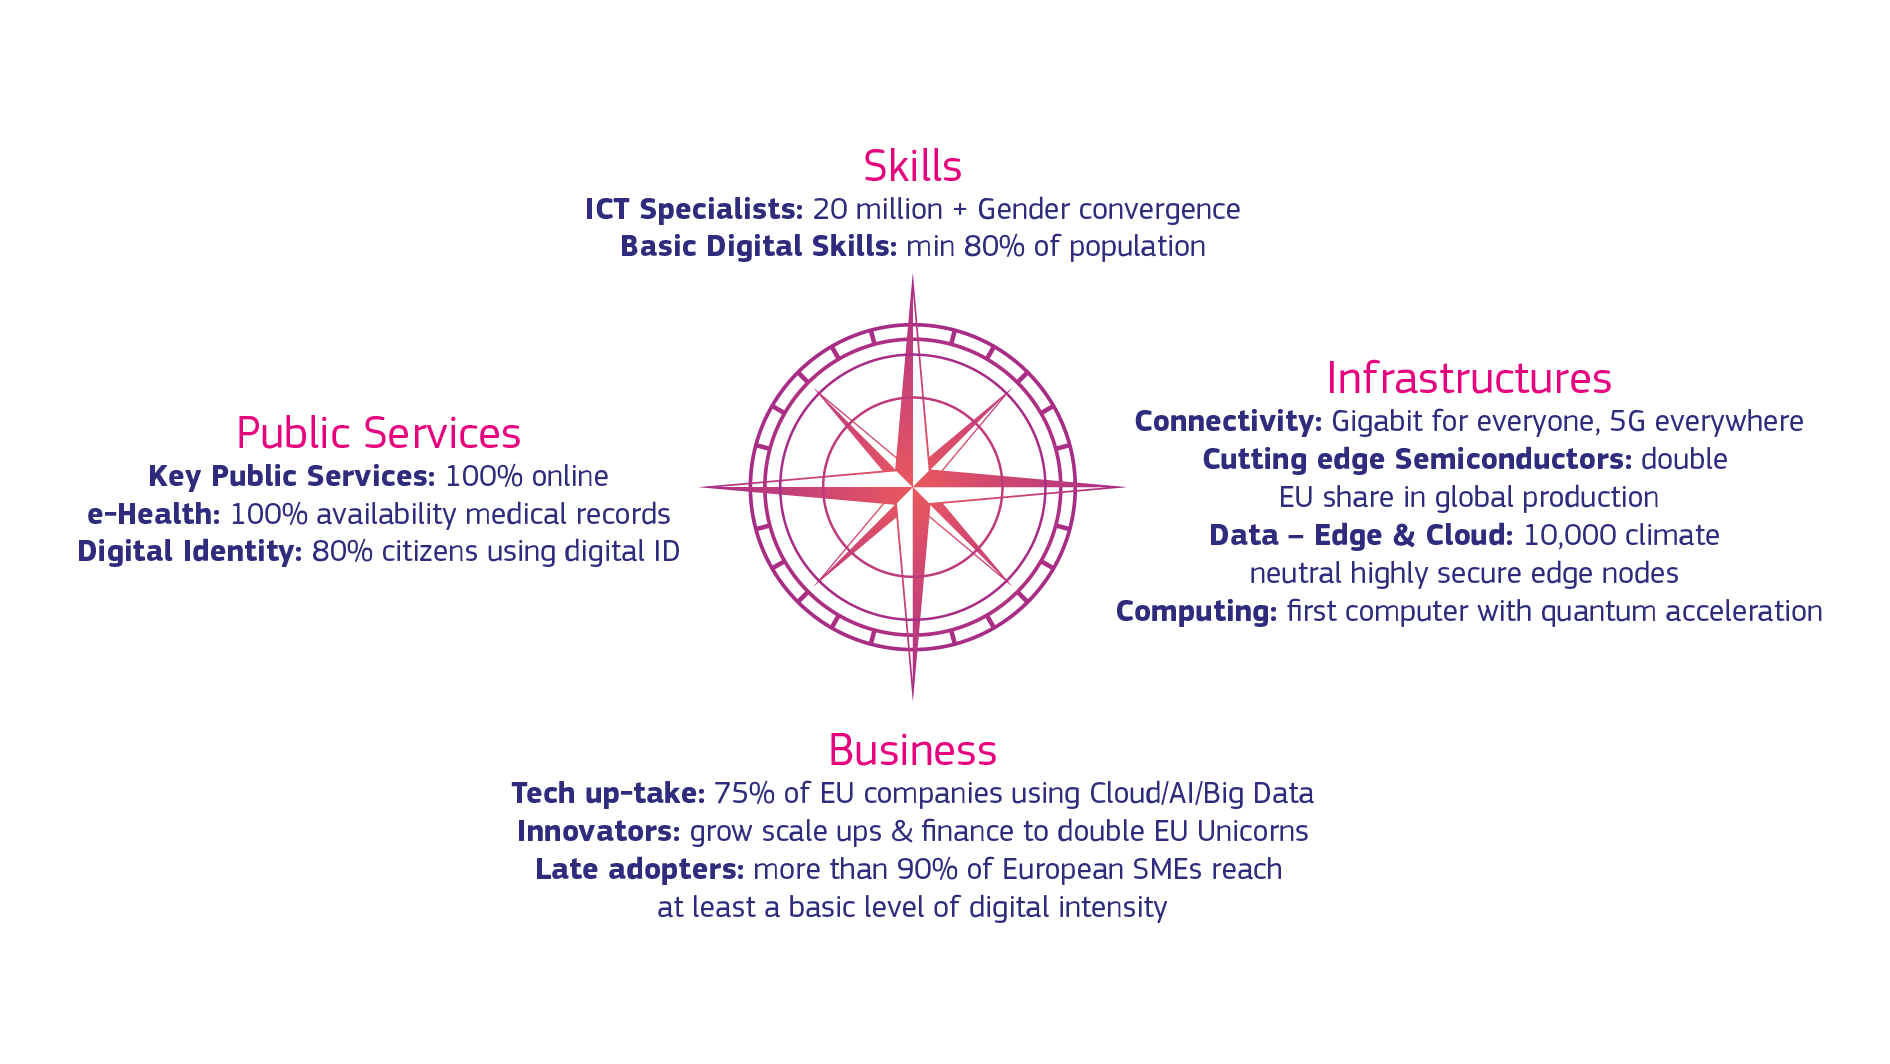 Targets: 20 million employed ICT specialists, 80% adults with basic digital skills, Gigabit connectivity for everyone, 5G everywhere, double EU share in global production of semiconductors, 10 000 climate neutral edge nodes, first computer with quantum acceleration, 75% of companies using AI/cloud/big data, grow scaleups and finance for innovation, more than 90% SMEs with basic level of digital intensity, 100% online key public services, 100% availability of medical records online, 80% citizens using eID